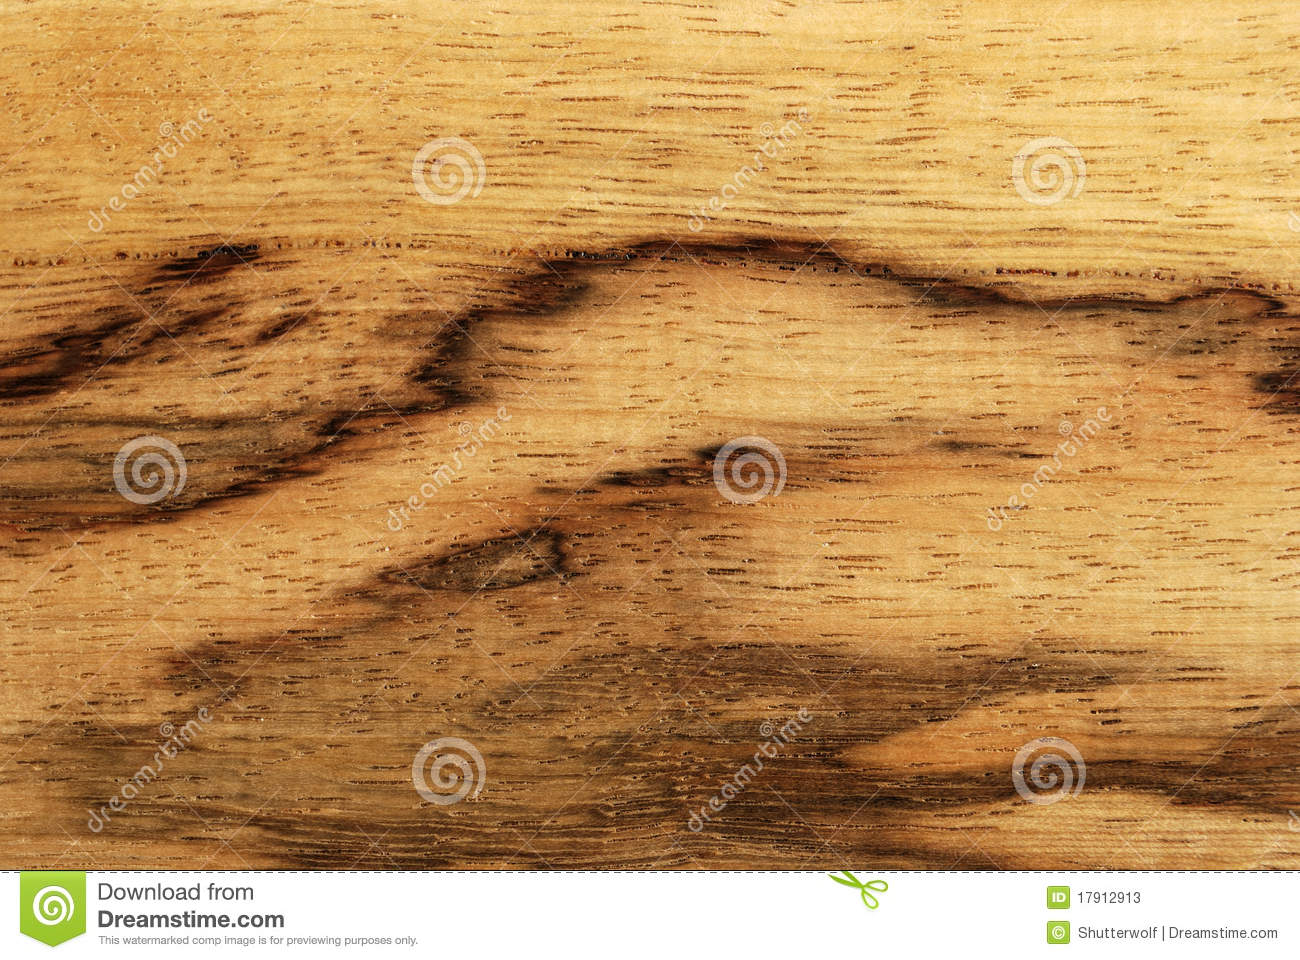 Afrikaan spalted hout (limba)